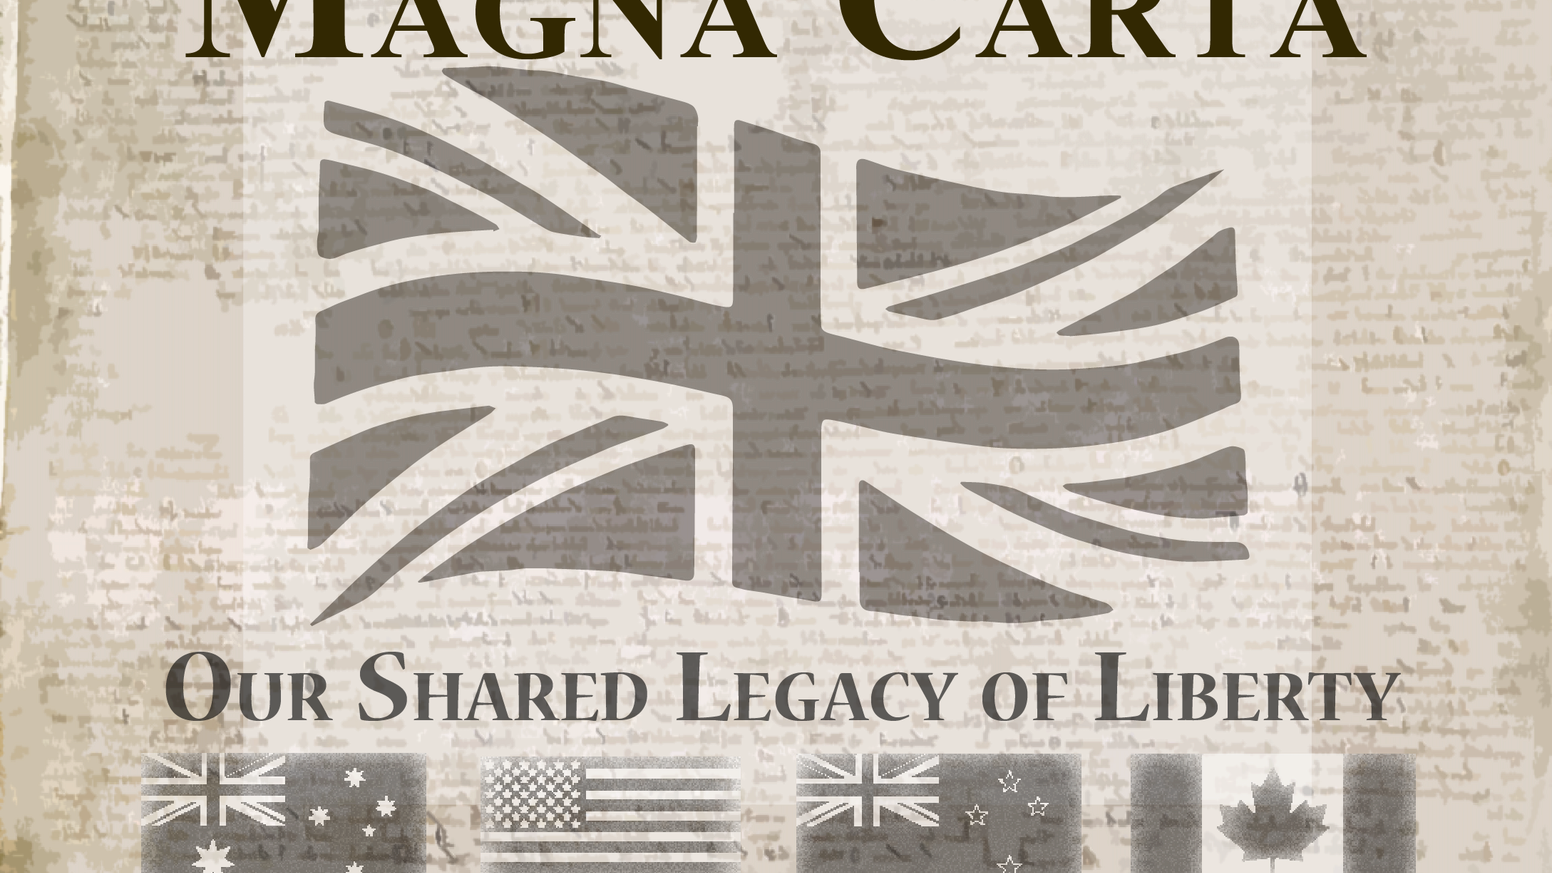 We tell the story of Magna Carta, foundation of our rights: freedom's unlikely origins, remarkable triumphs and modern challenges.